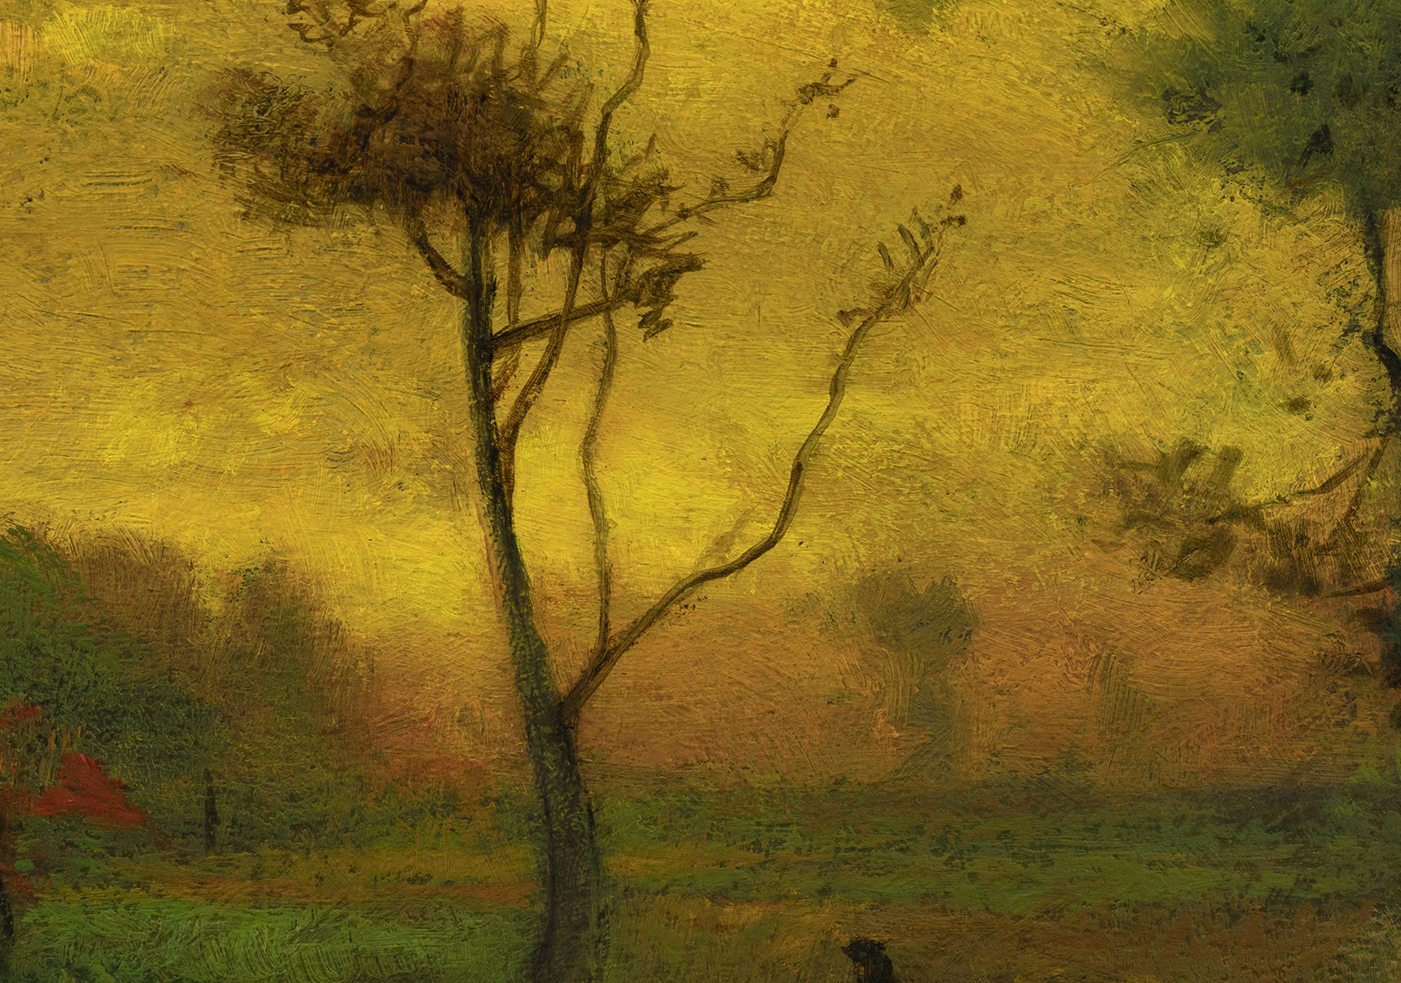 Study after George Inness 'Sunrise' by M Francis McCarthy - 7x10 (Detail)